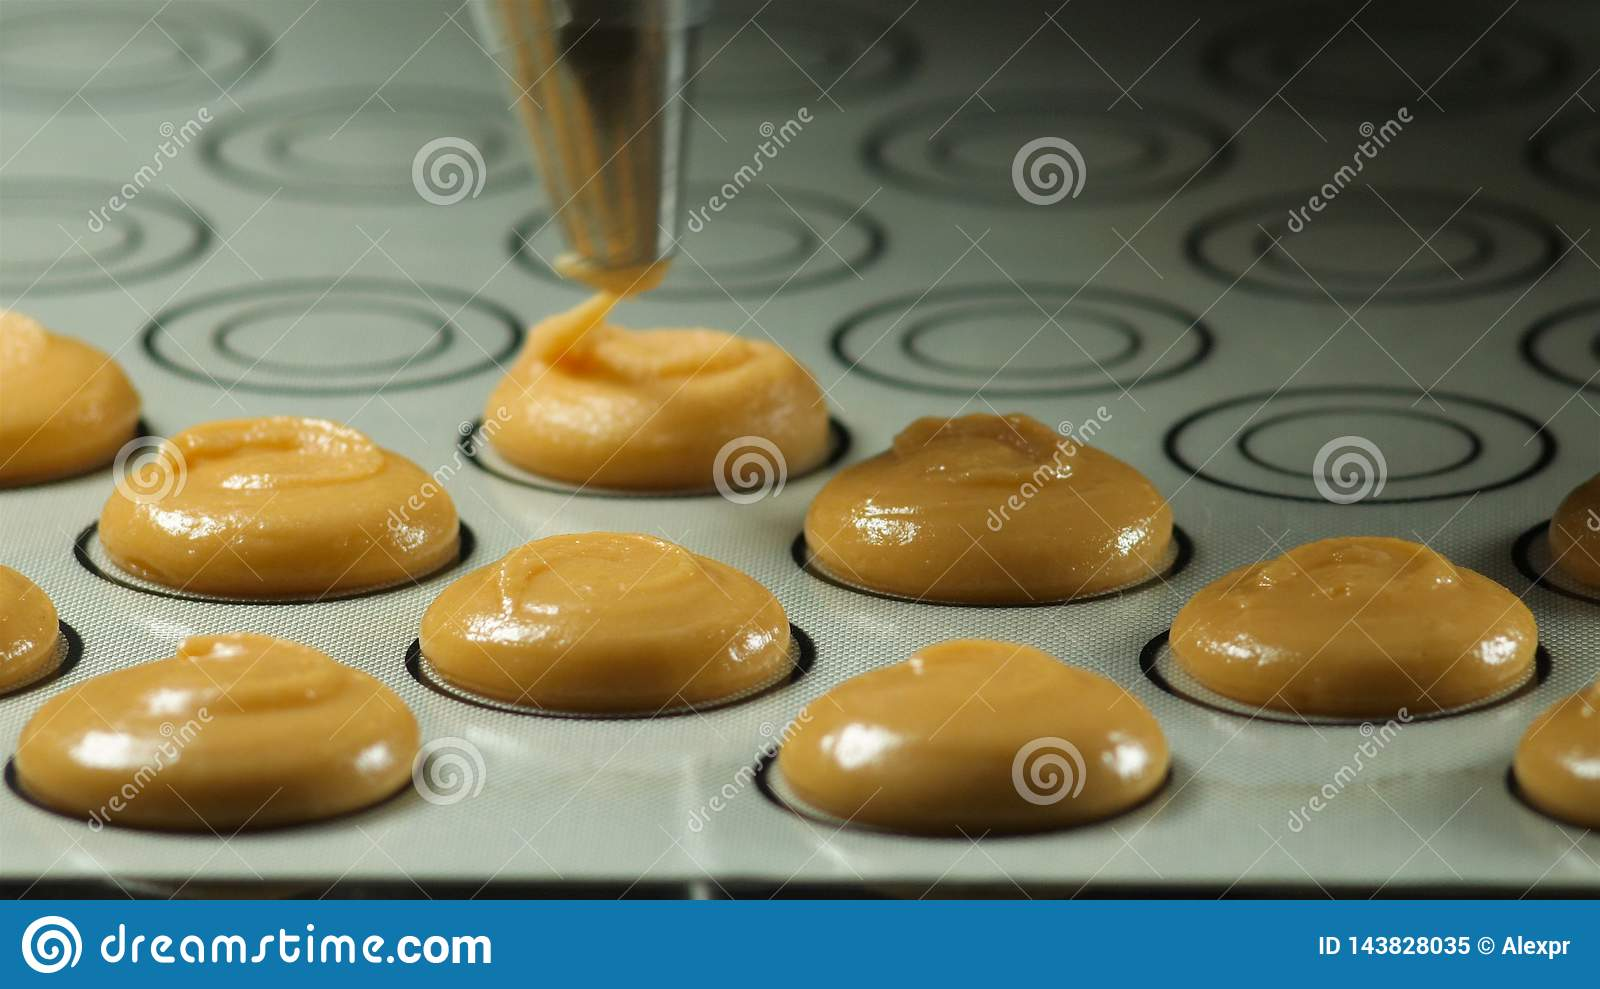 Making macaron , french dessert, squeezing the dough form cooking bag. Food industry, mass or volume production.